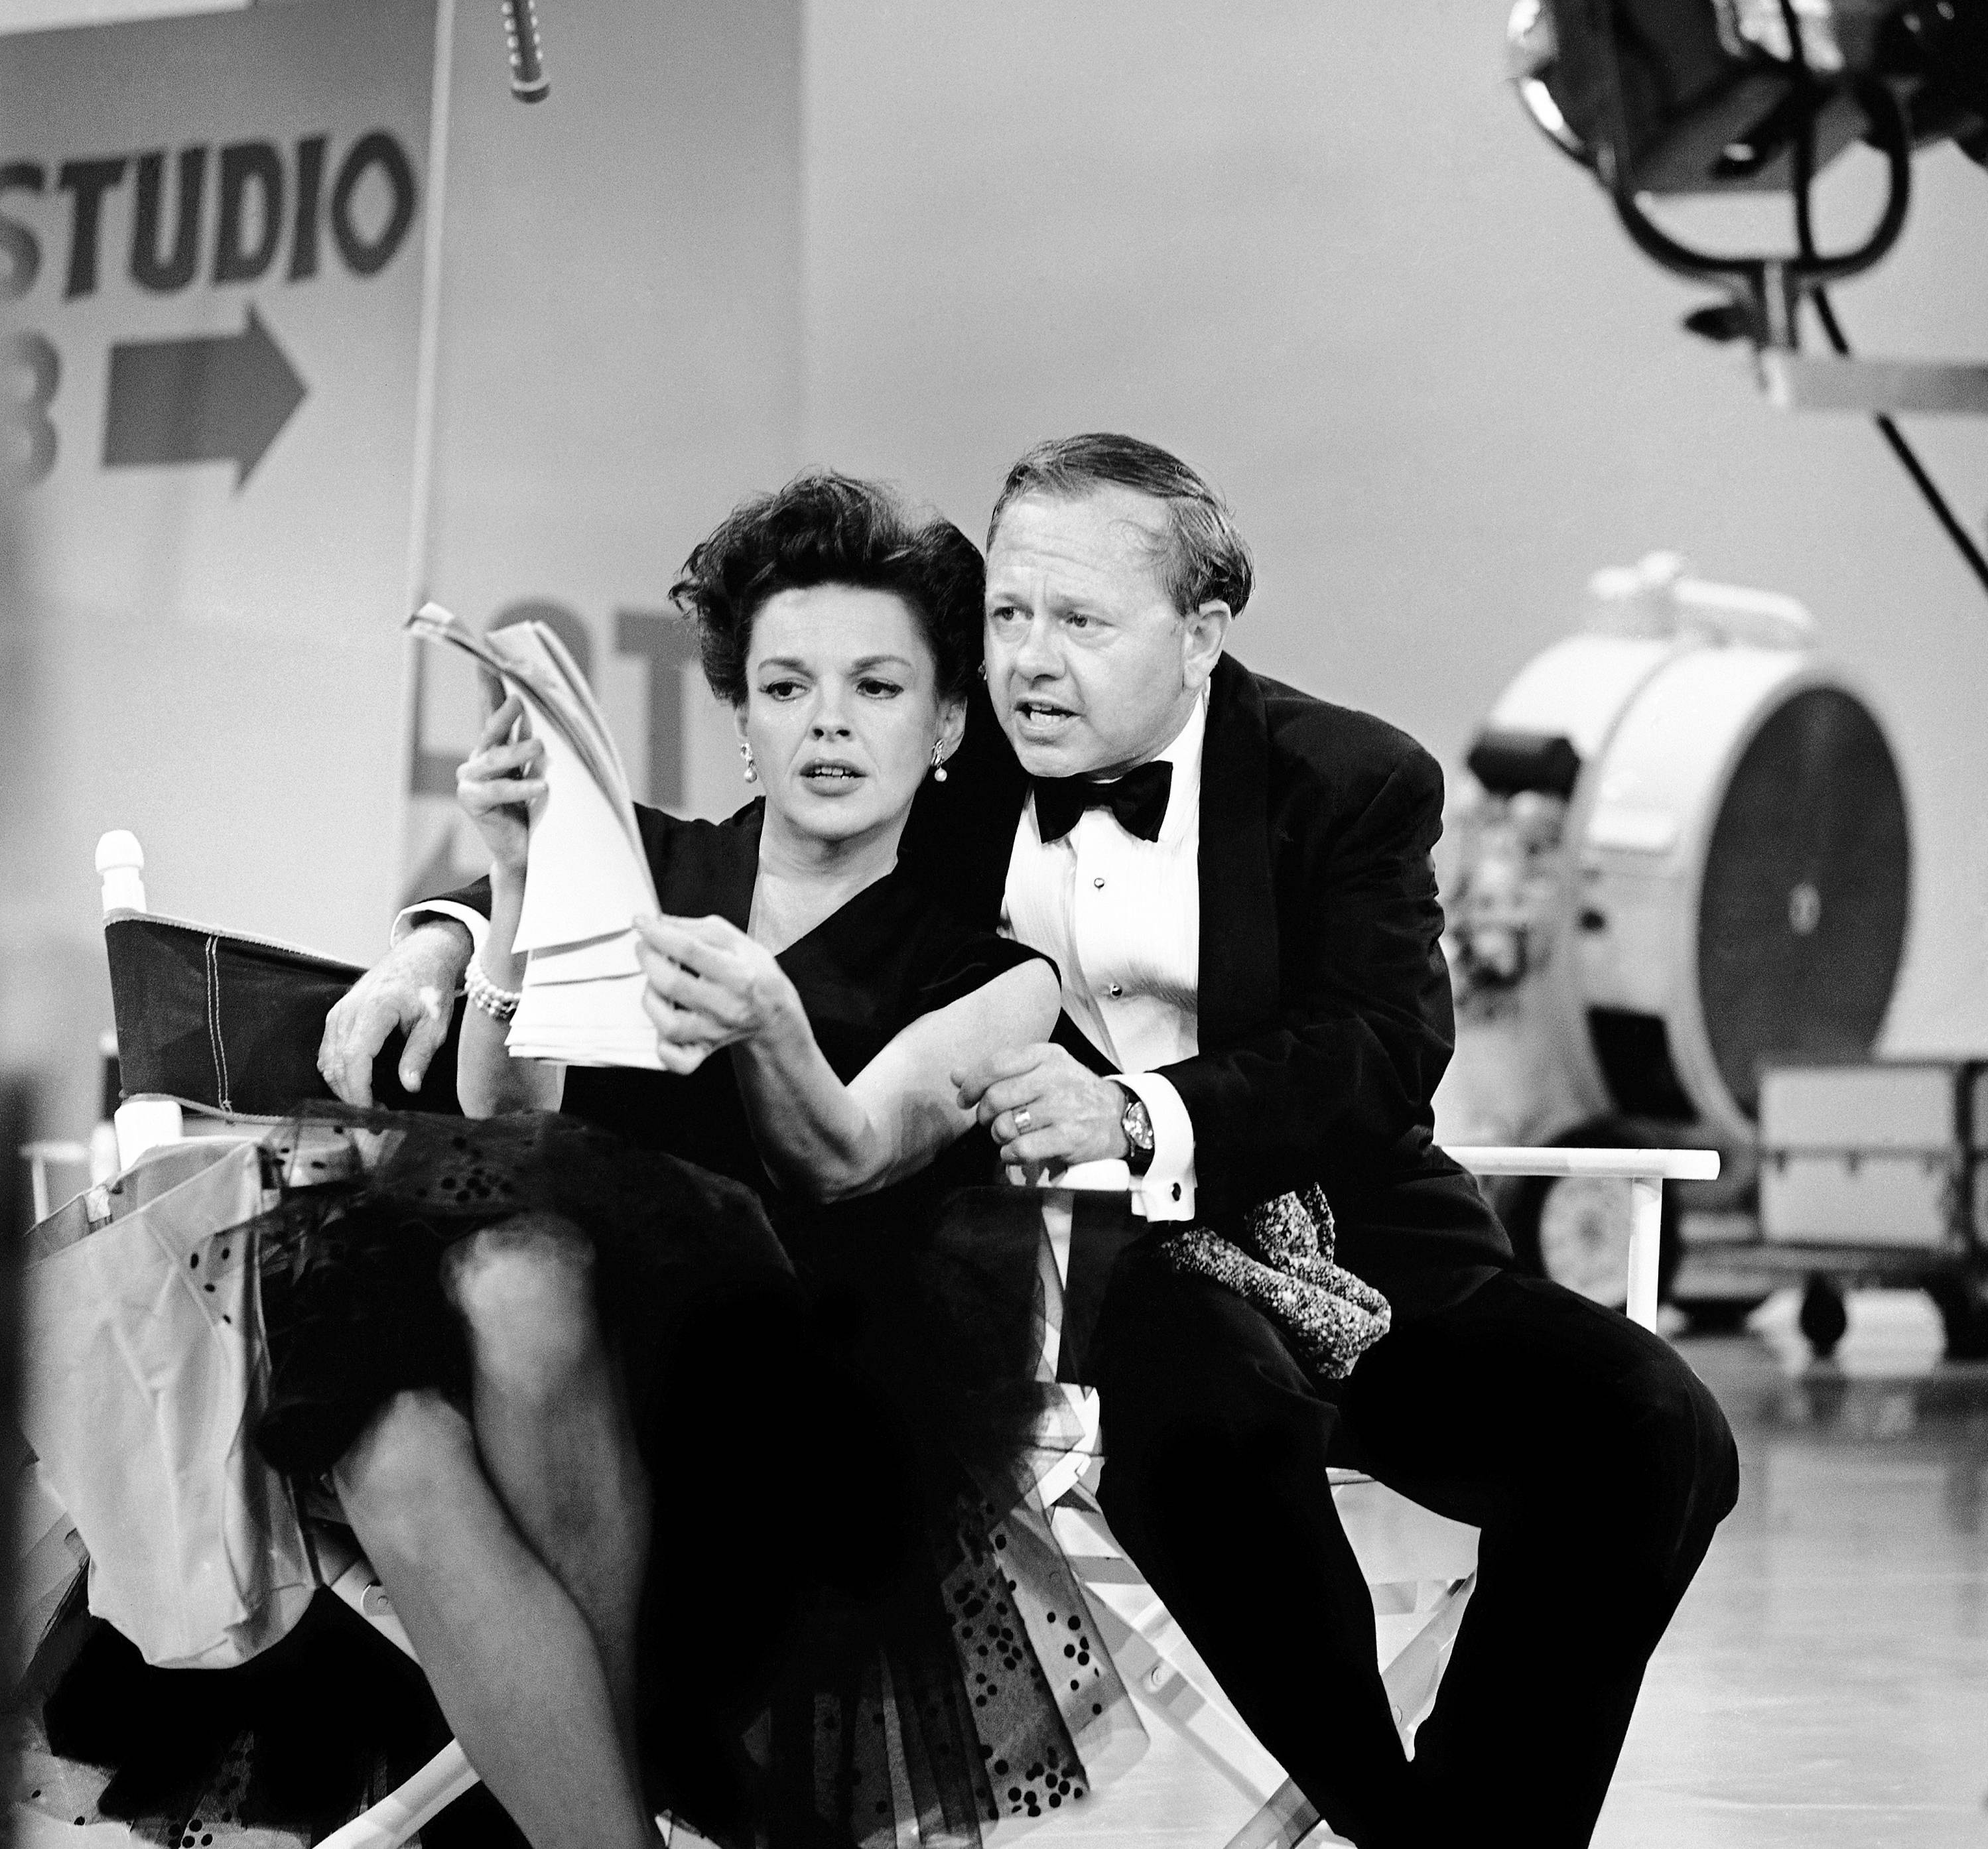 Judy Garland and Mickey Rooney put their heads together in 1963 over a television script for their first onstage reunion in 18 years.